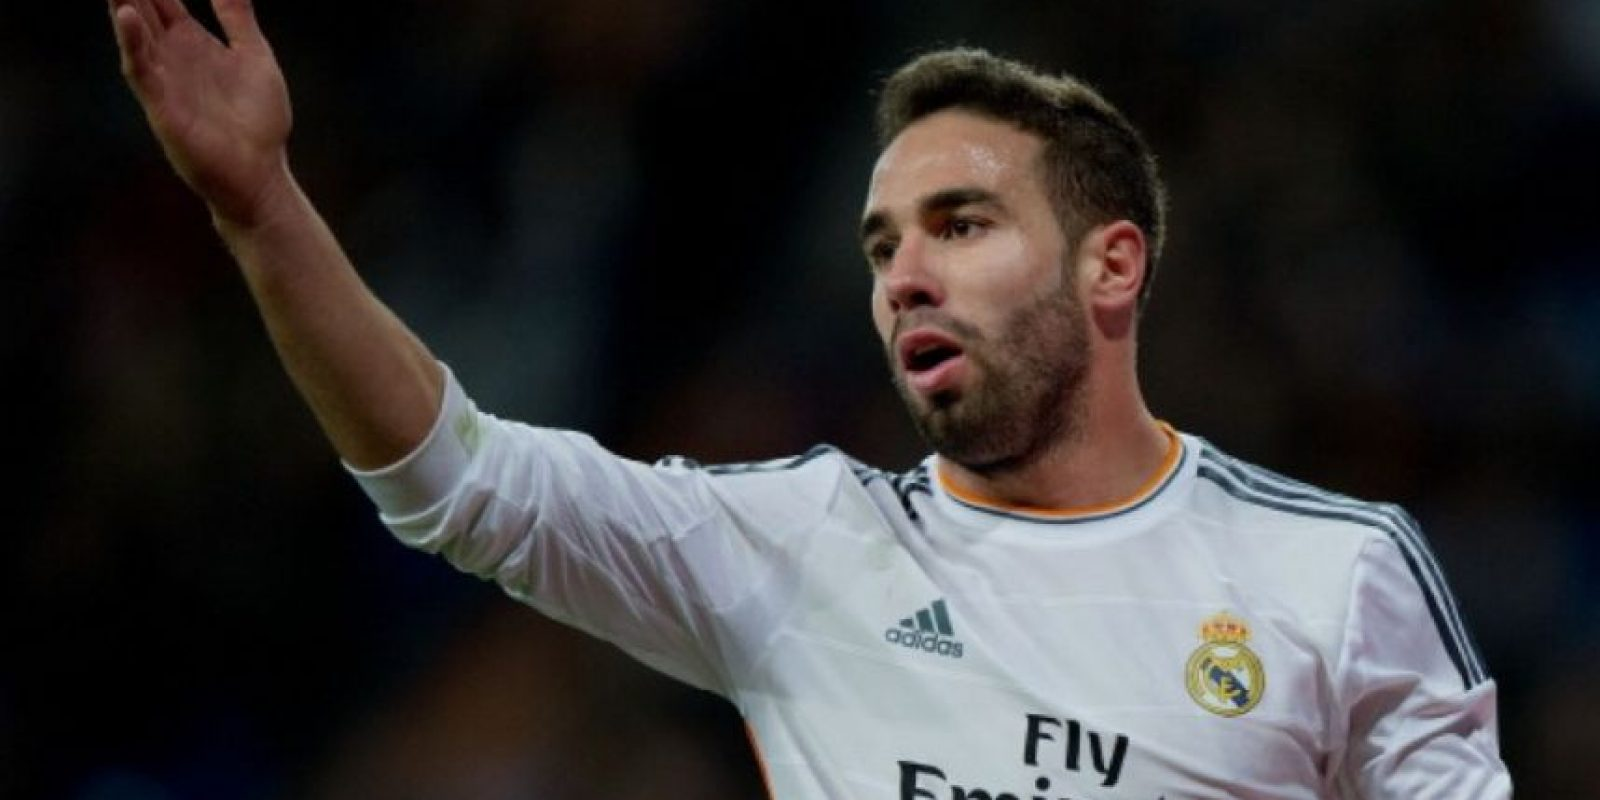 Dani Carvajal en la vida real. Foto: Getty Images